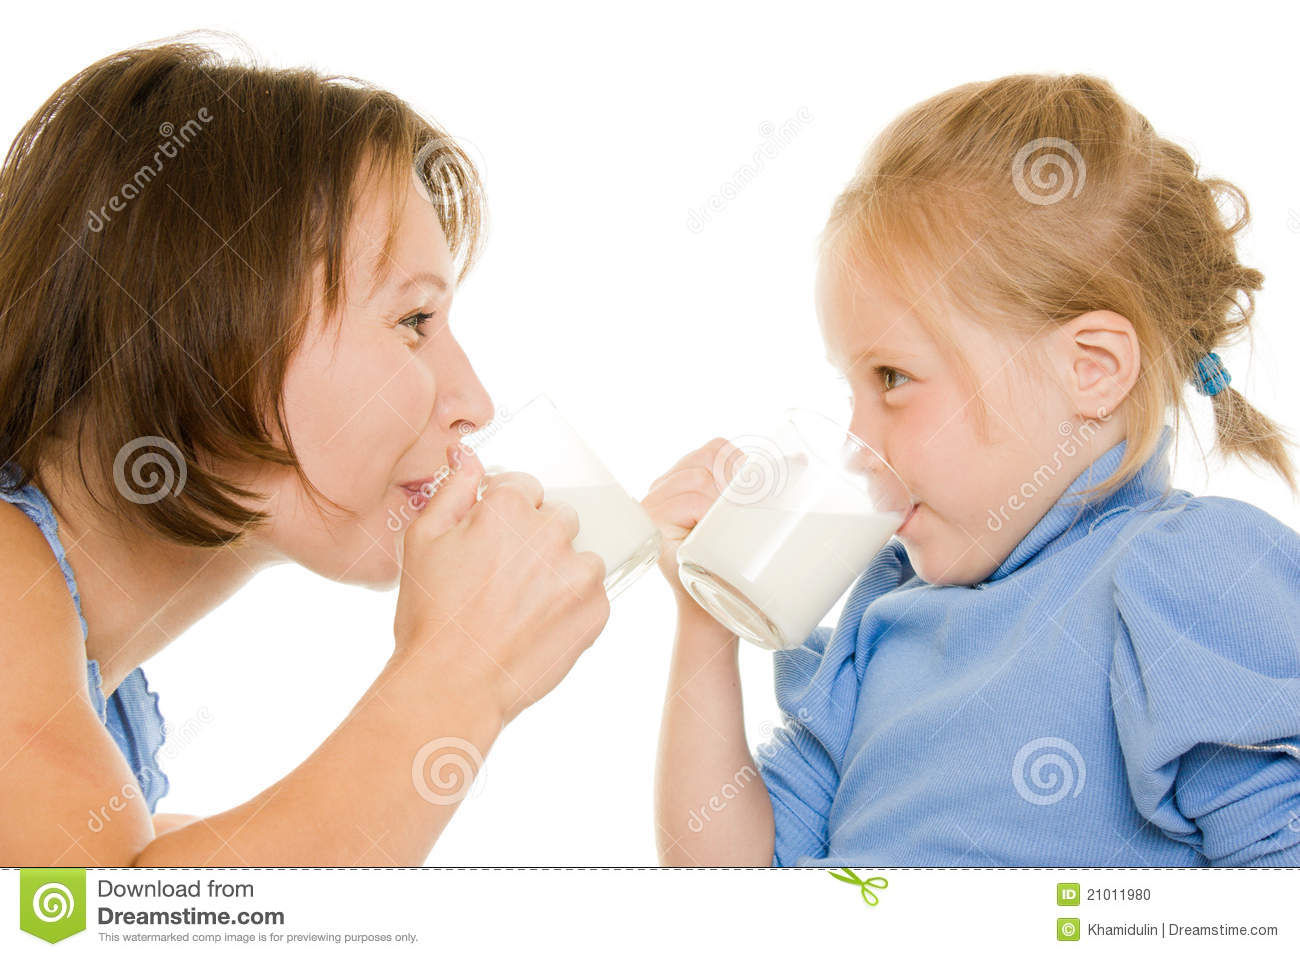 Mom and daughter drink milk.